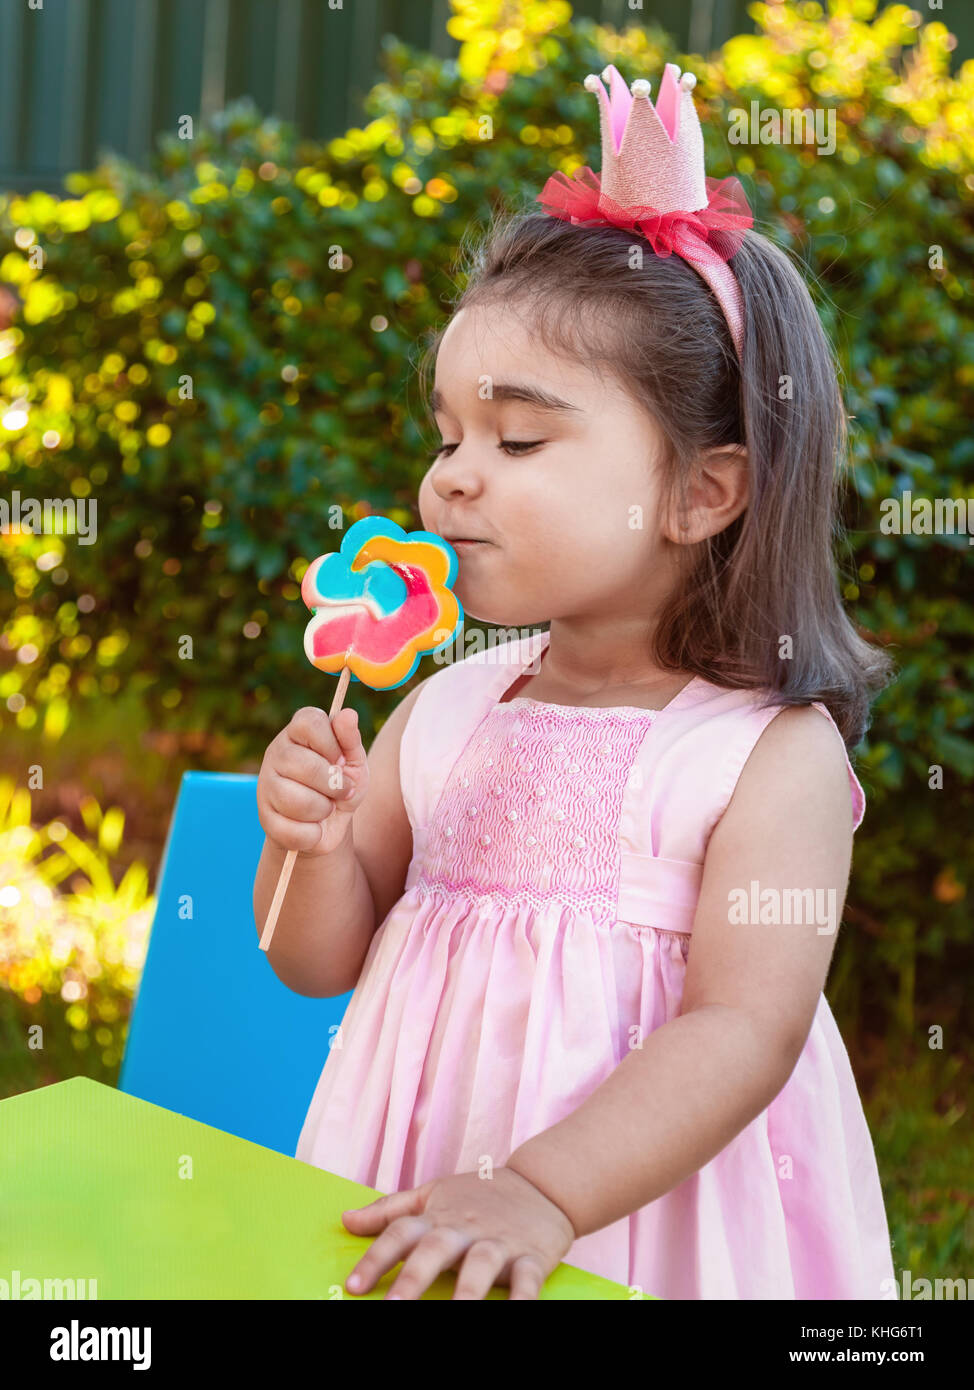 Happy baby toddler girl smelling and savoring a large colorful lollipop smell, scent or aroma dressed in pink dress - Stock Image